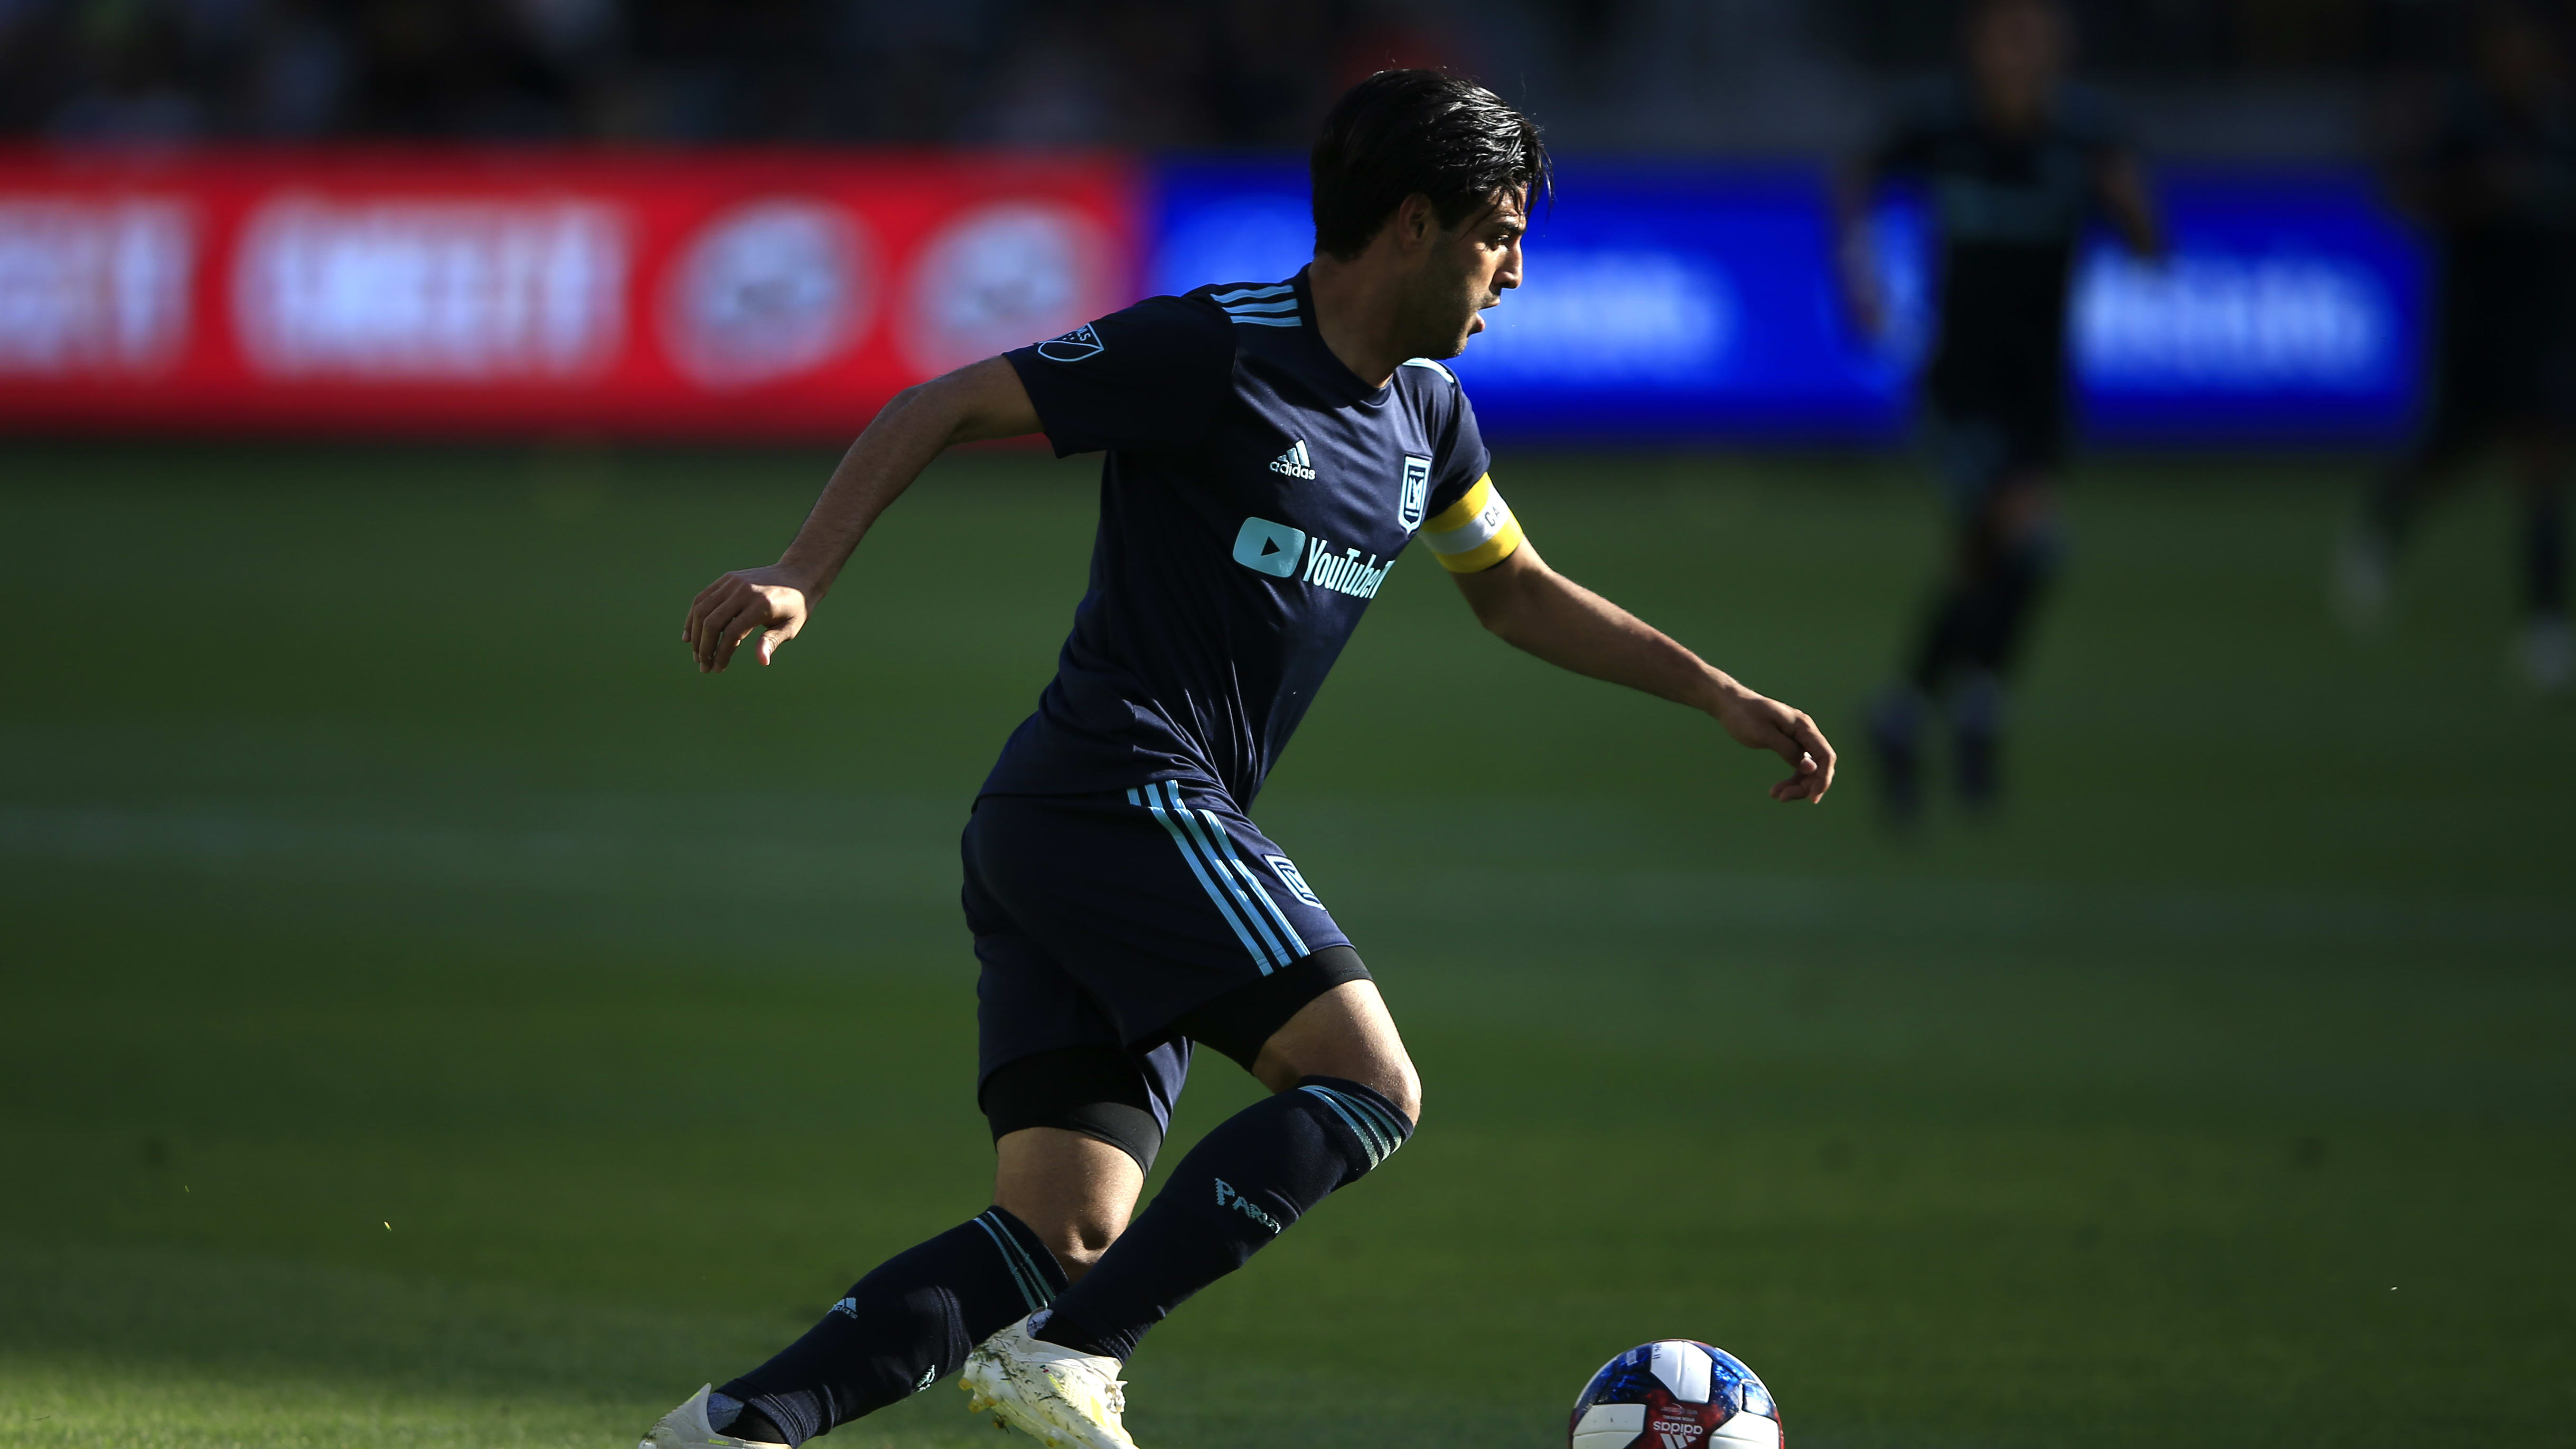 LOS ANGELES, CALIFORNIA - APRIL 21:  Carlos Vela #10 of Los Angeles FC dribbles the ball during the second half of a game against the Seattle Sounders at Banc of California Stadium on April 21, 2019 in Los Angeles, California. (Photo by Sean M. Haffey/Getty Images)